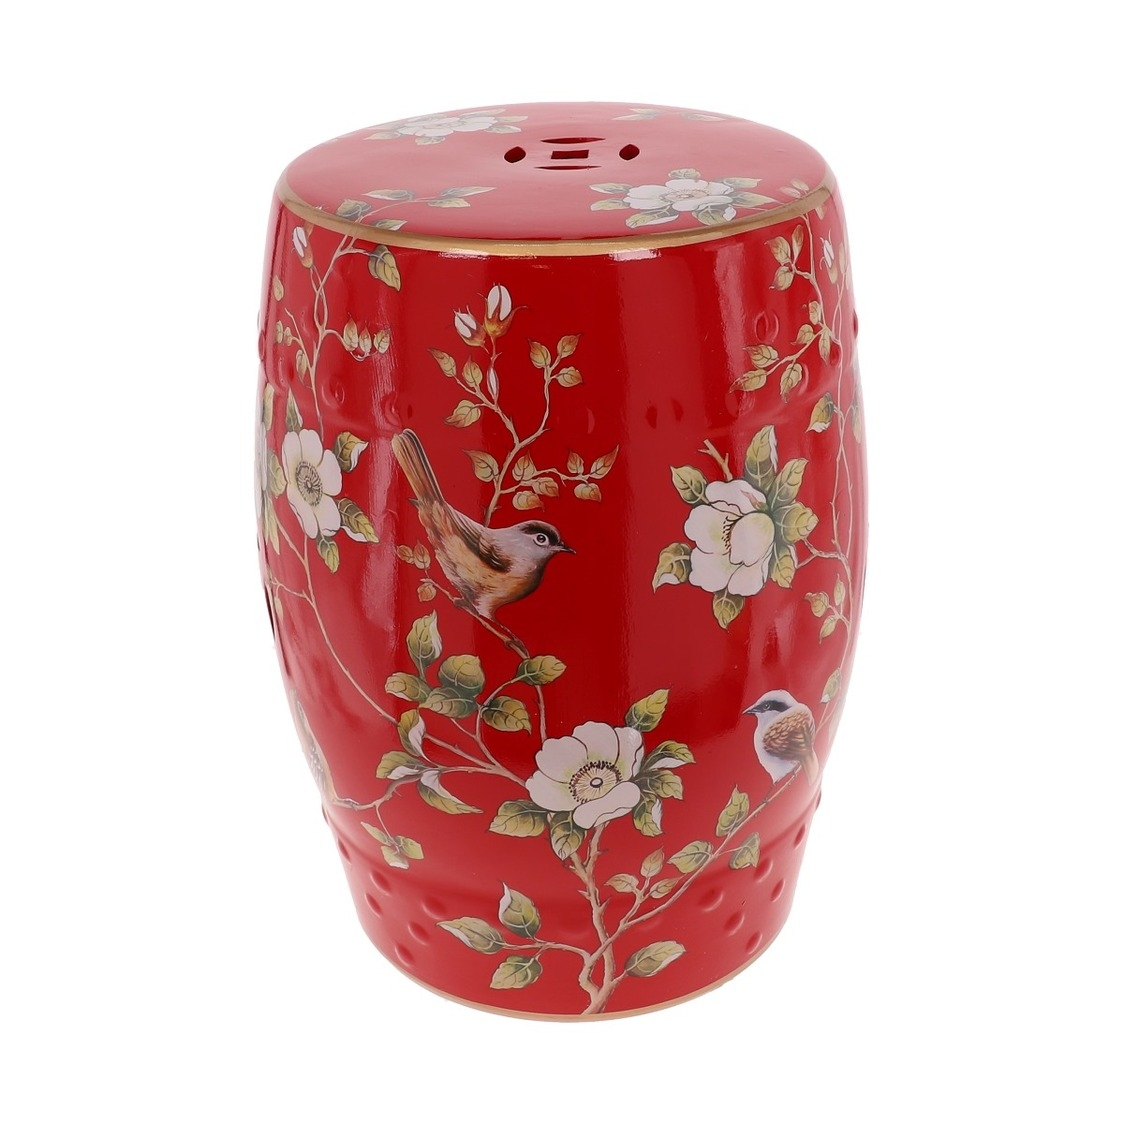 Porcelain Stool 18 in Red